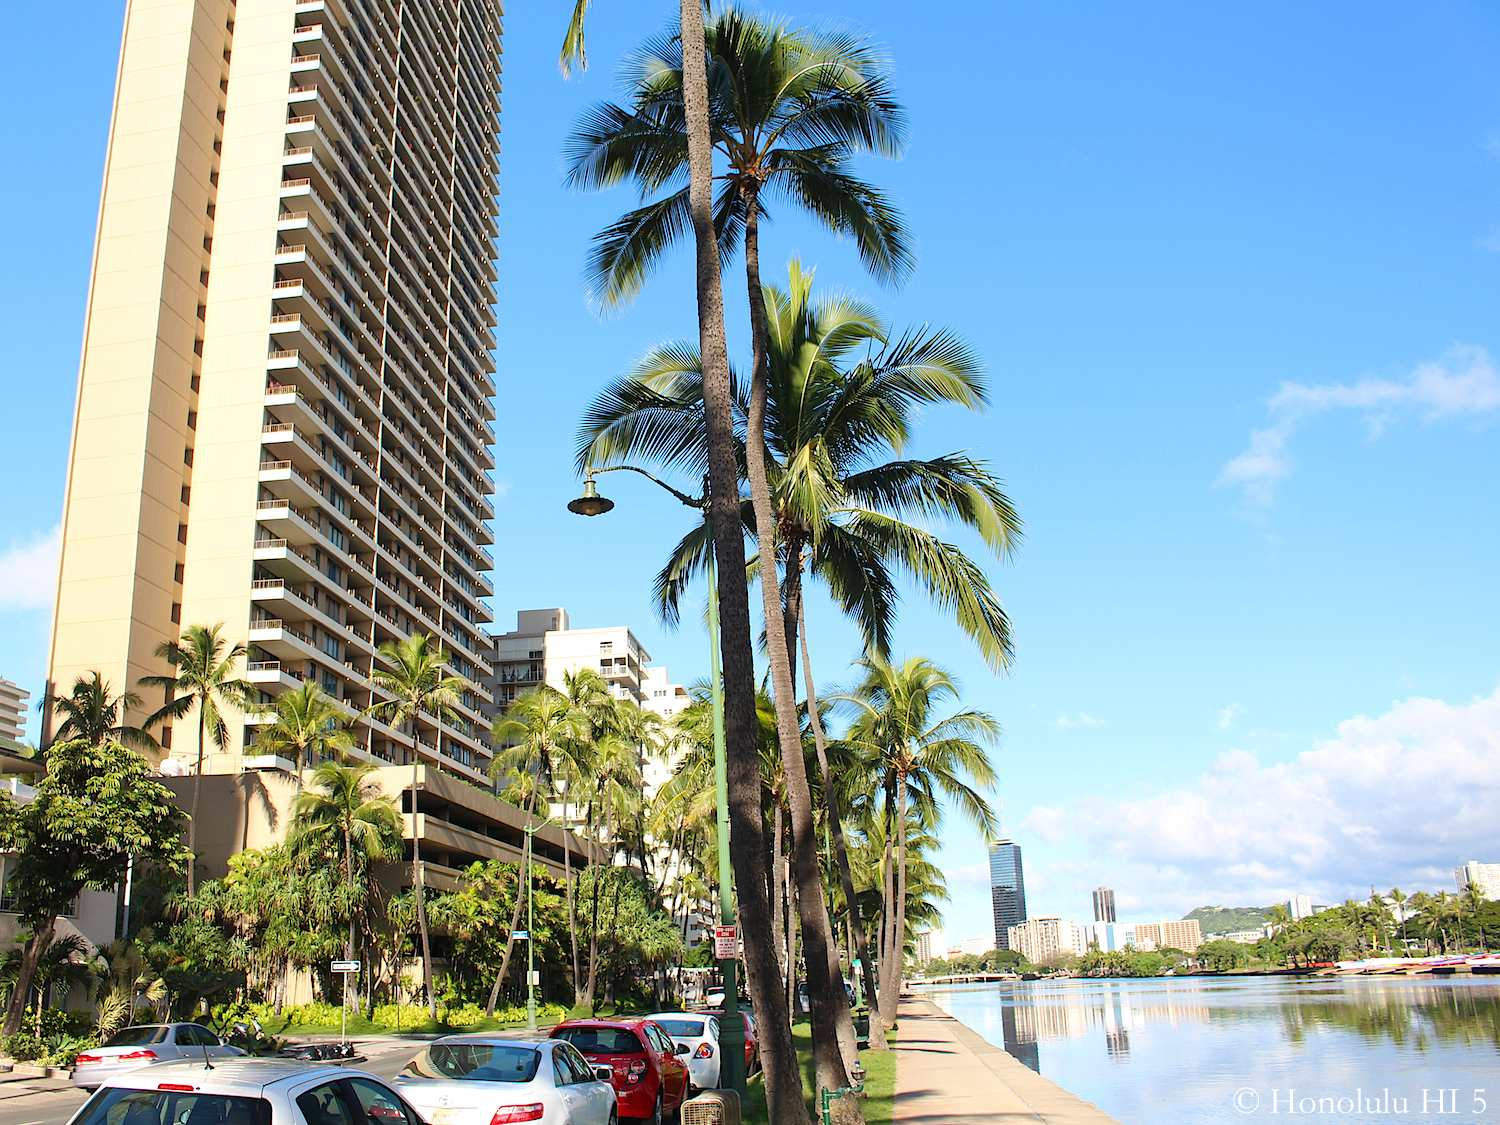 1717 Ala Wai Condos - a High-rise - Seen with Ala Wai Canal to the Right